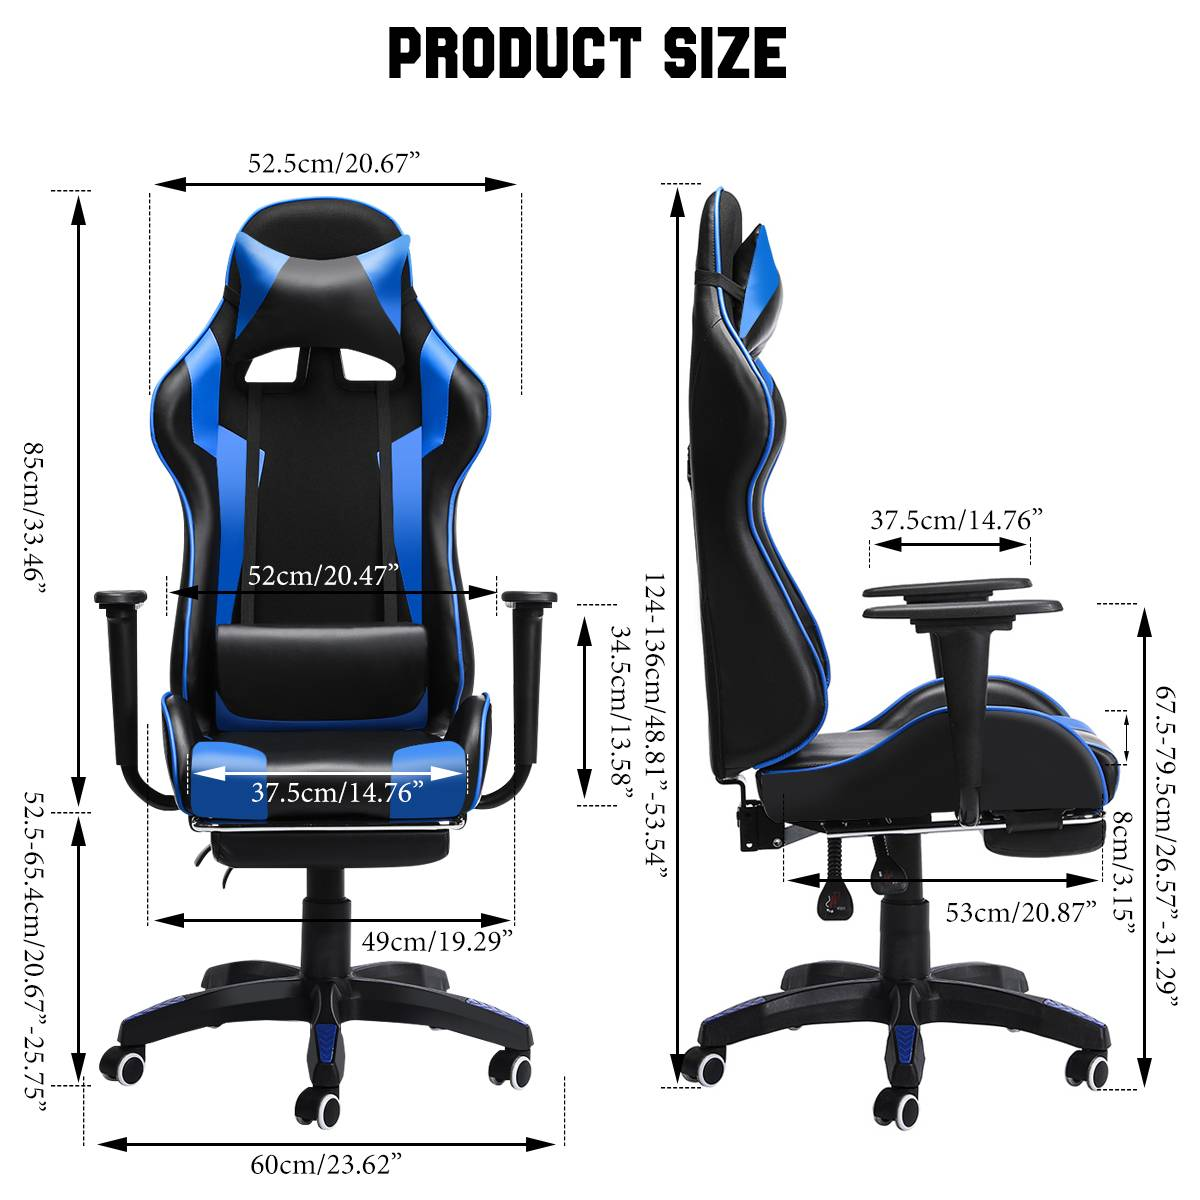 H903bfa58e14540e0b5bd4664a9ba5e37E - 155° Gaming Chairs with Footrest Ergonomic Office Chair Adjustable Swivel Leather High Back Computer Desk Chair with Headrest